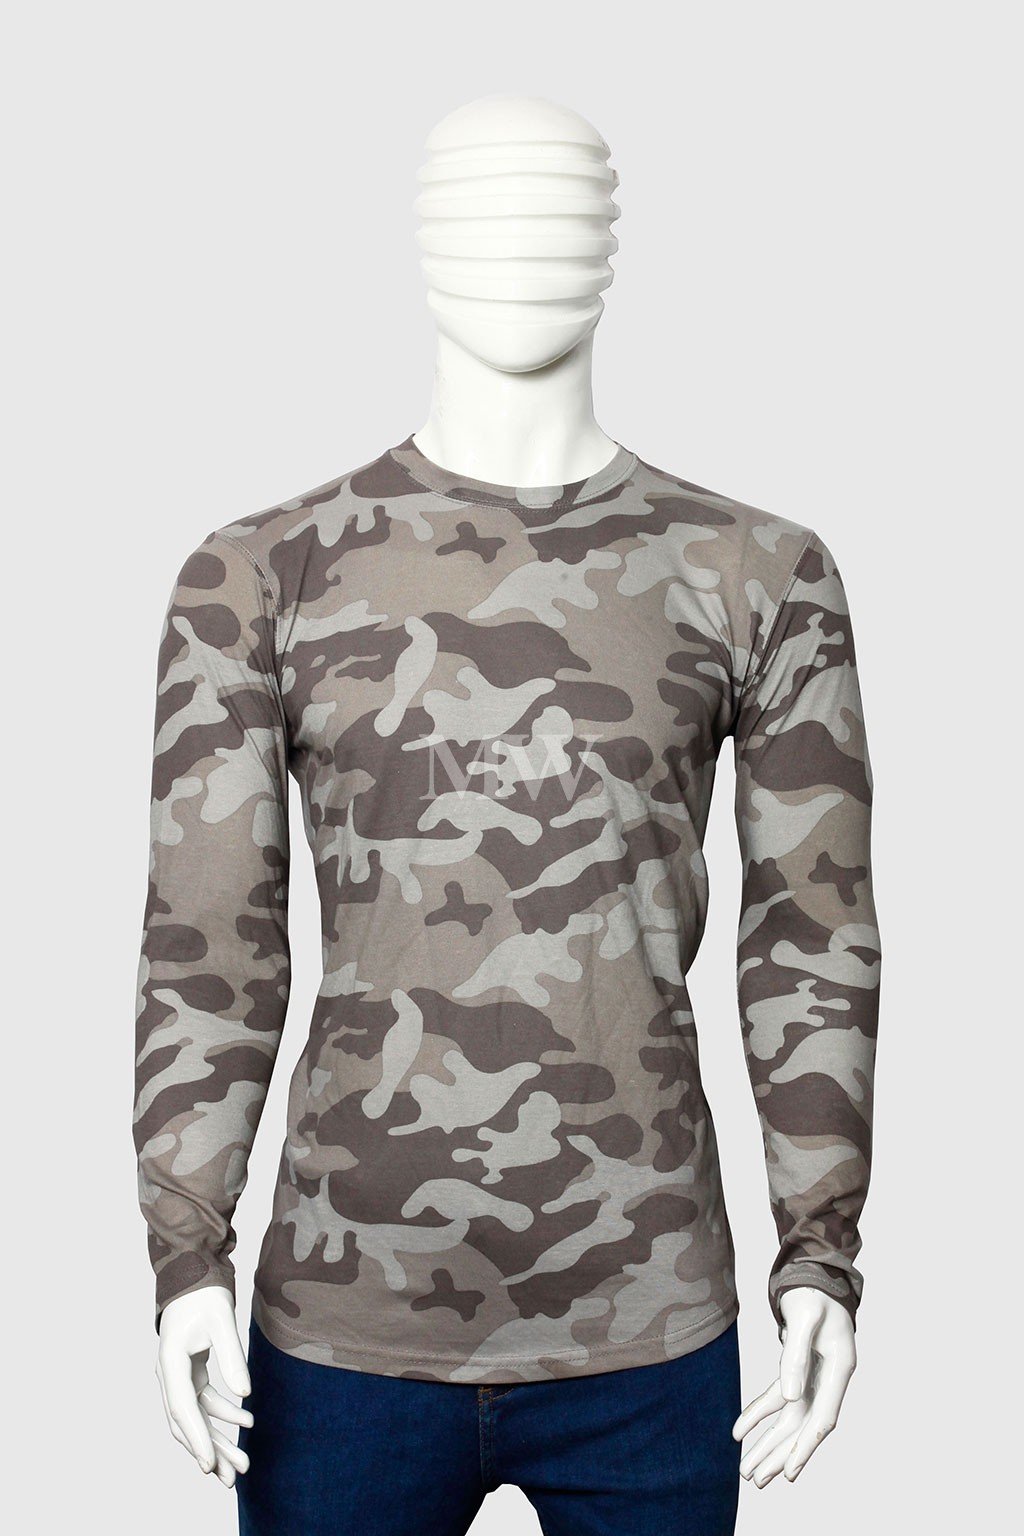 bd4540b1 Men's Military Style camouflage Printed Full Sleeve T-shirt ...